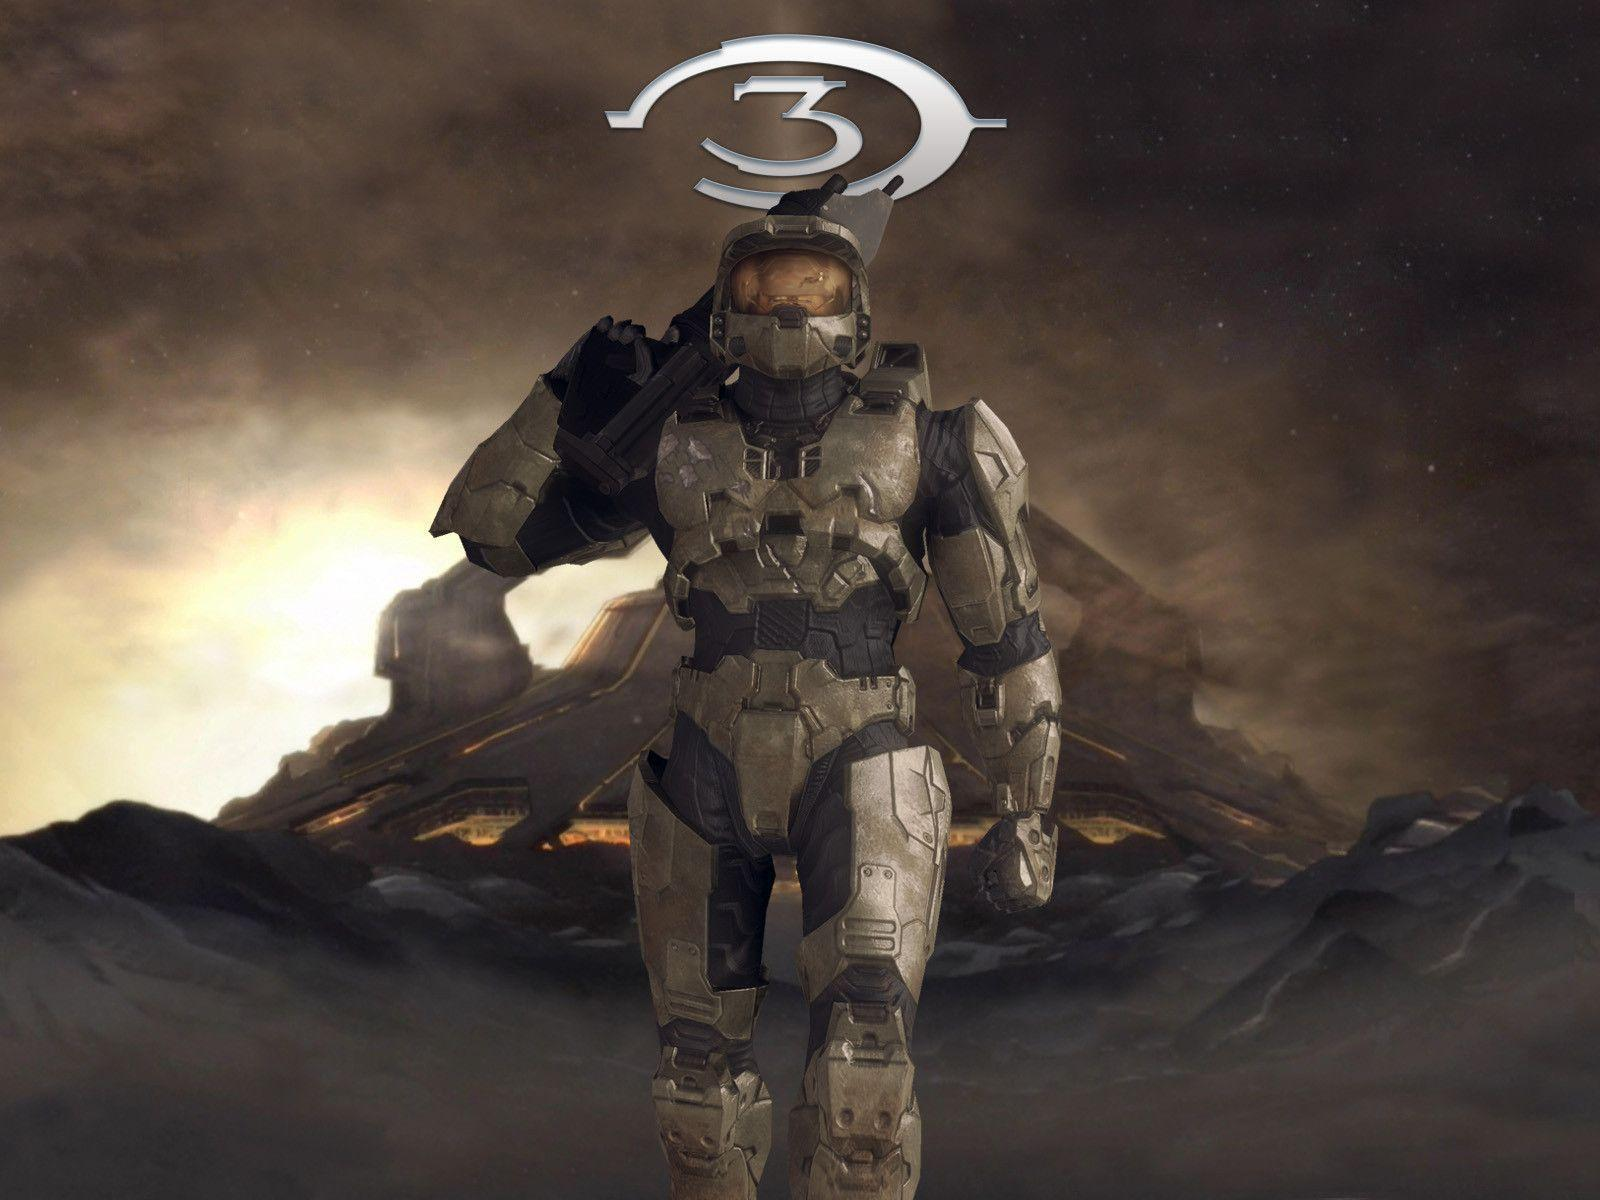 Halo Master Chief Wallpapers - Wallpaper Cave